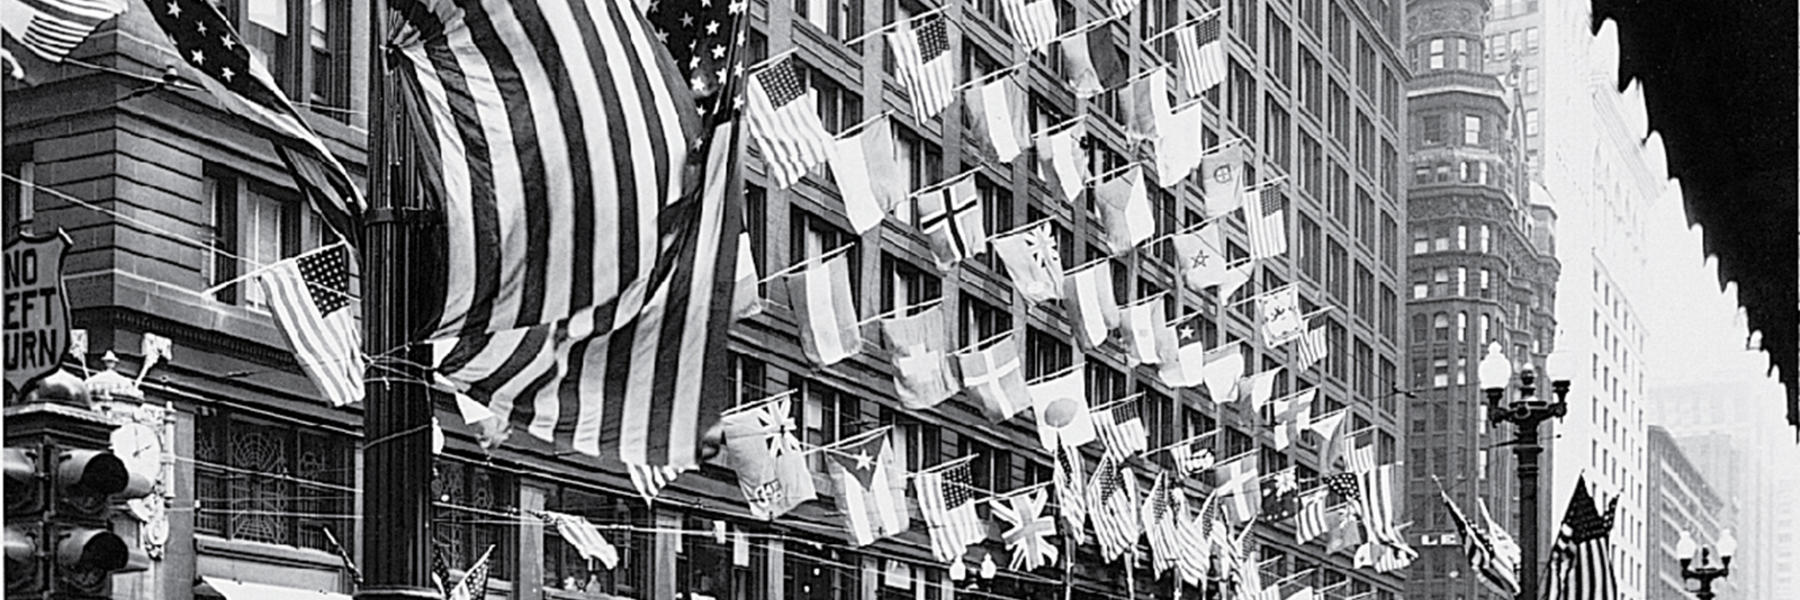 Marshall Field's exterior with flags